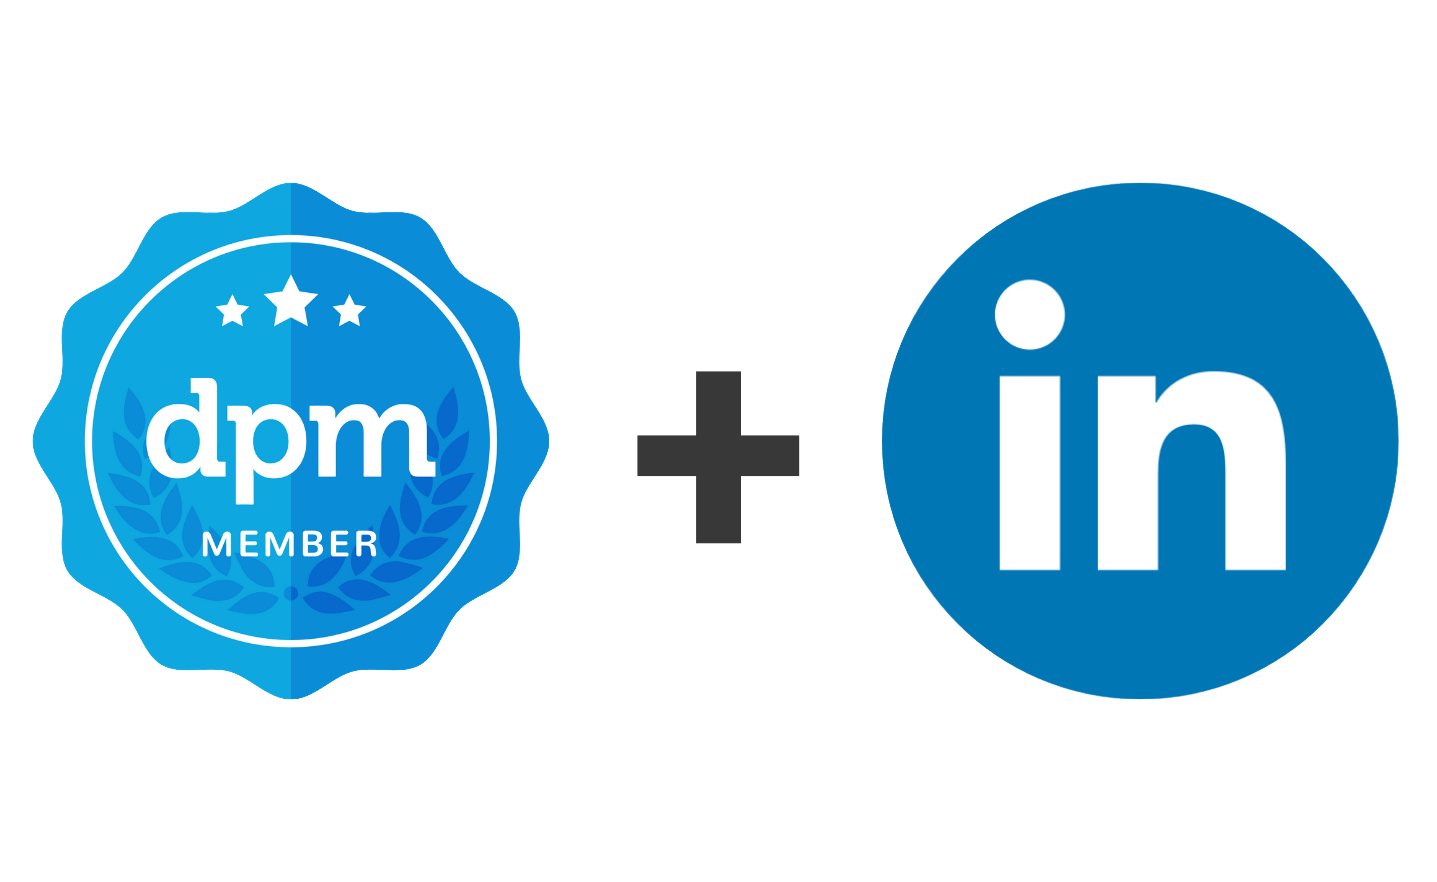 DPM Membership LinkedIn & Badge